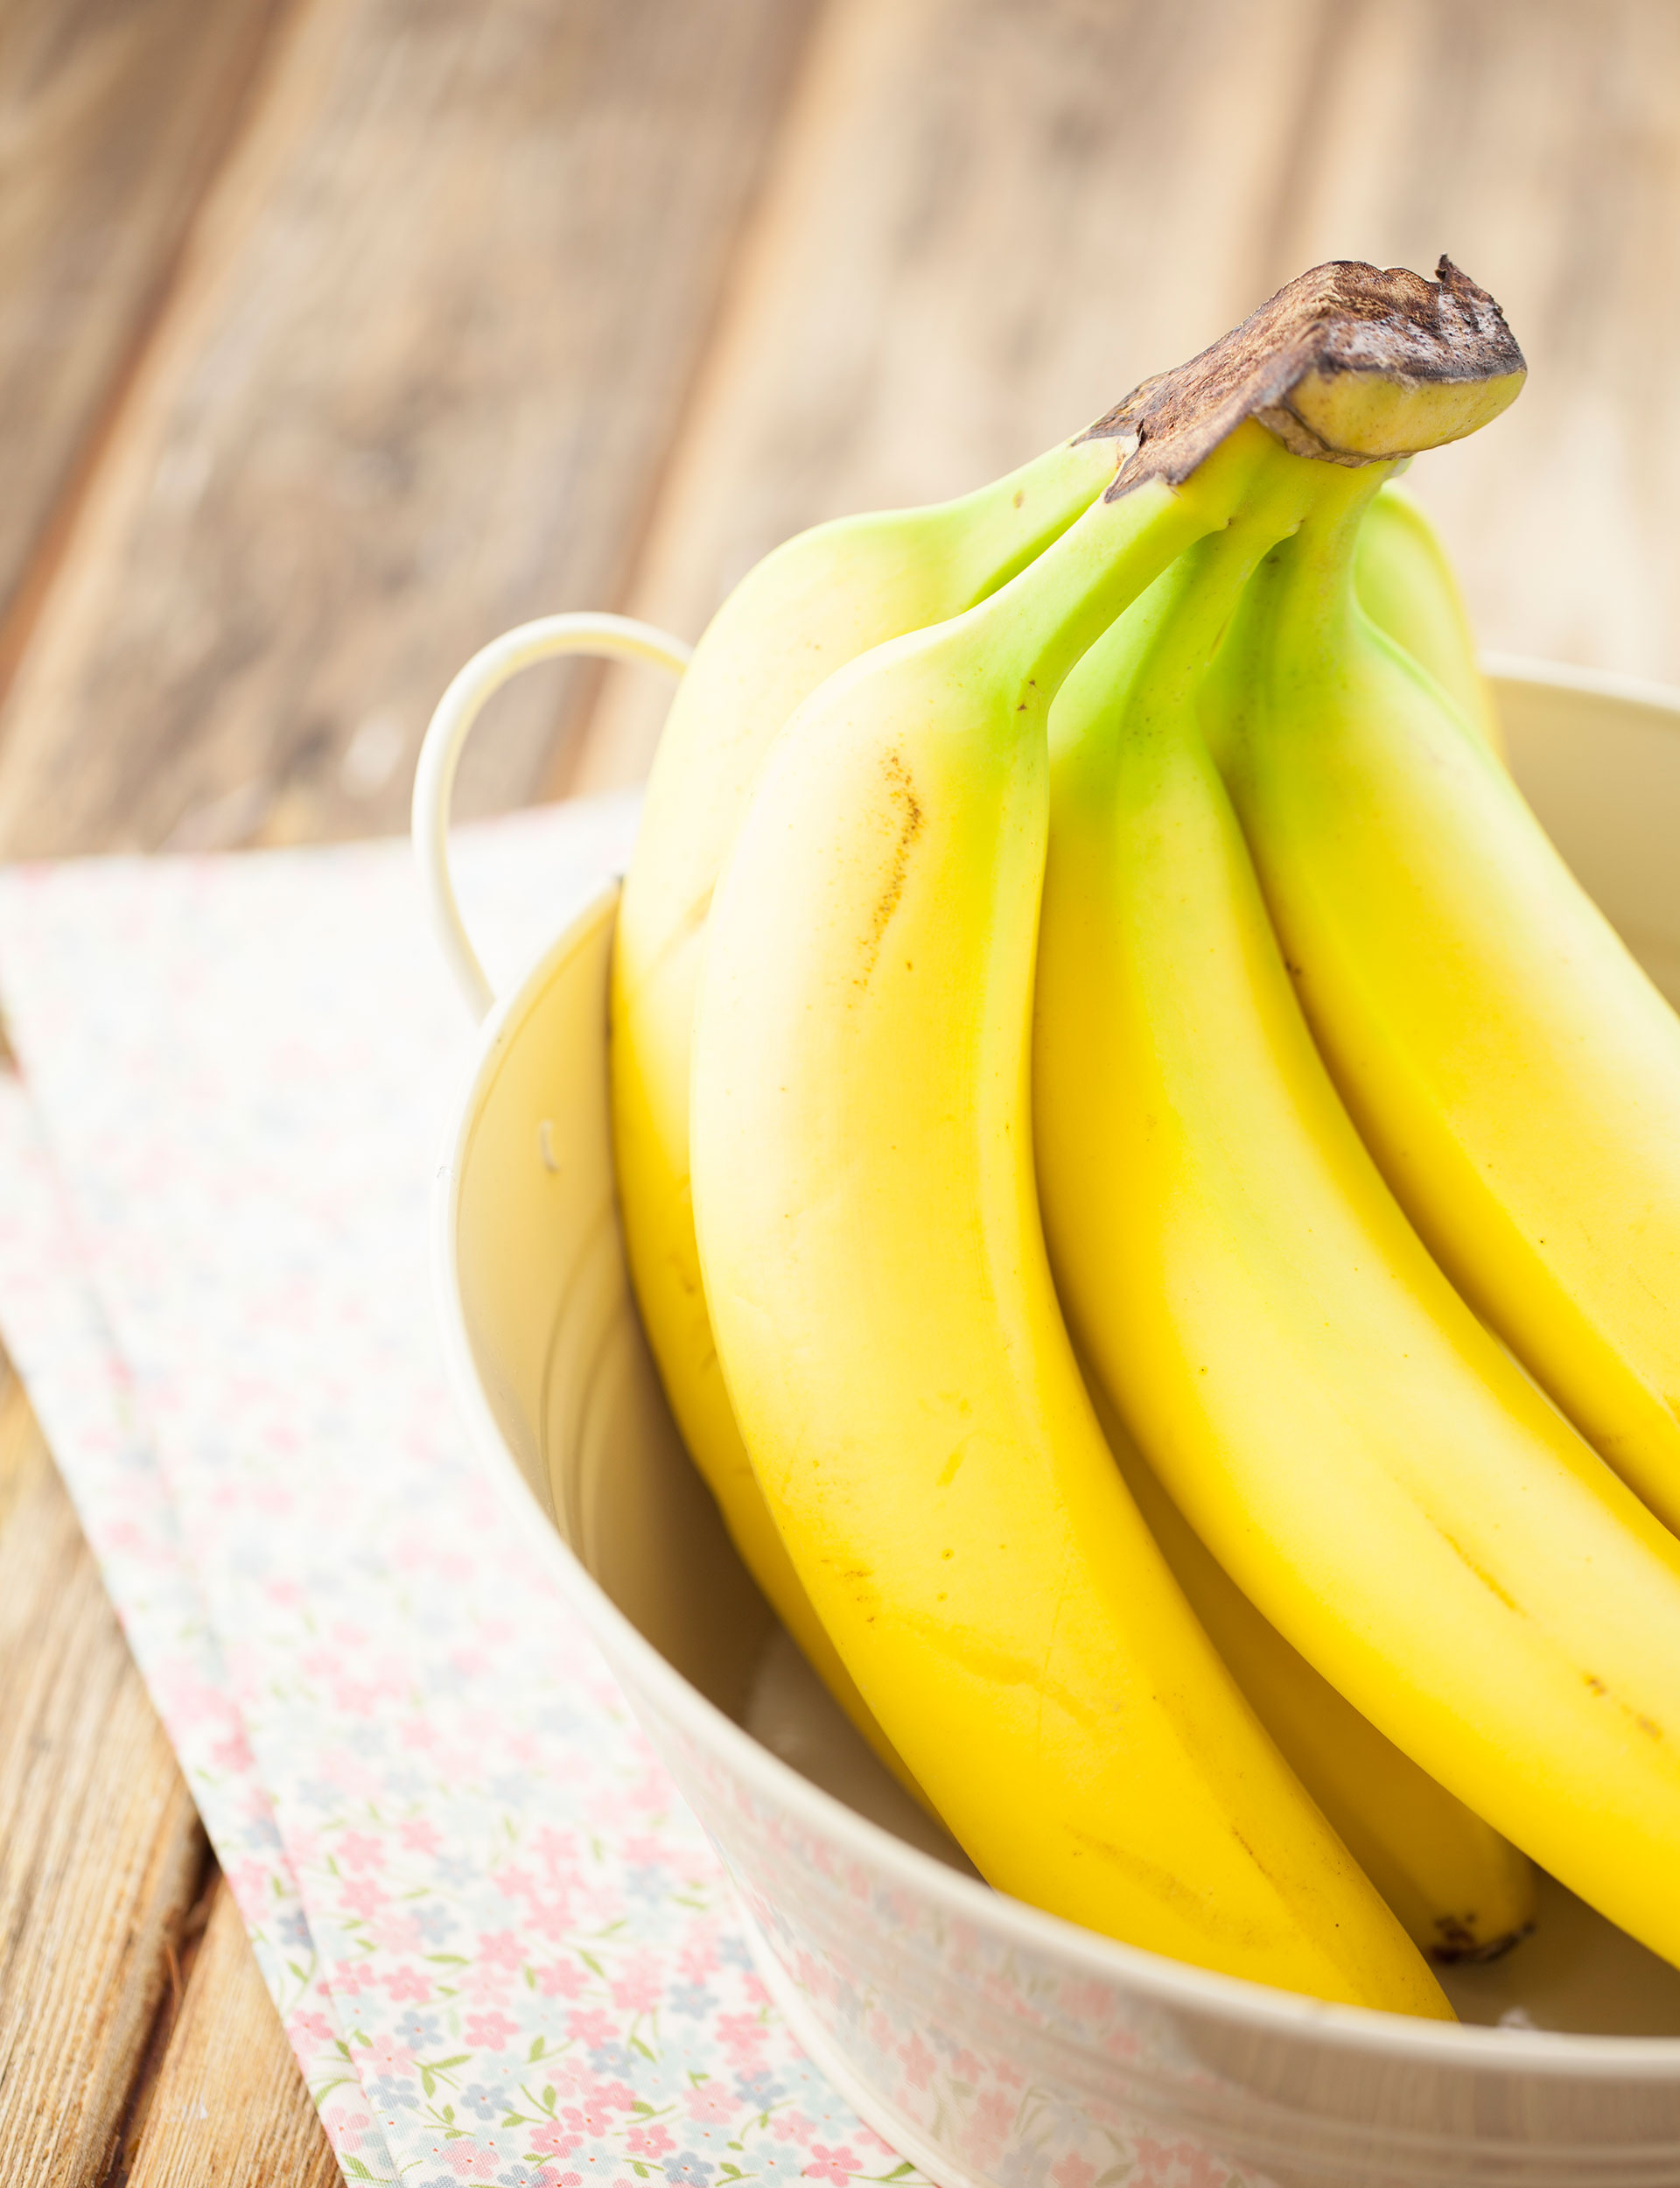 How much fat in bananas